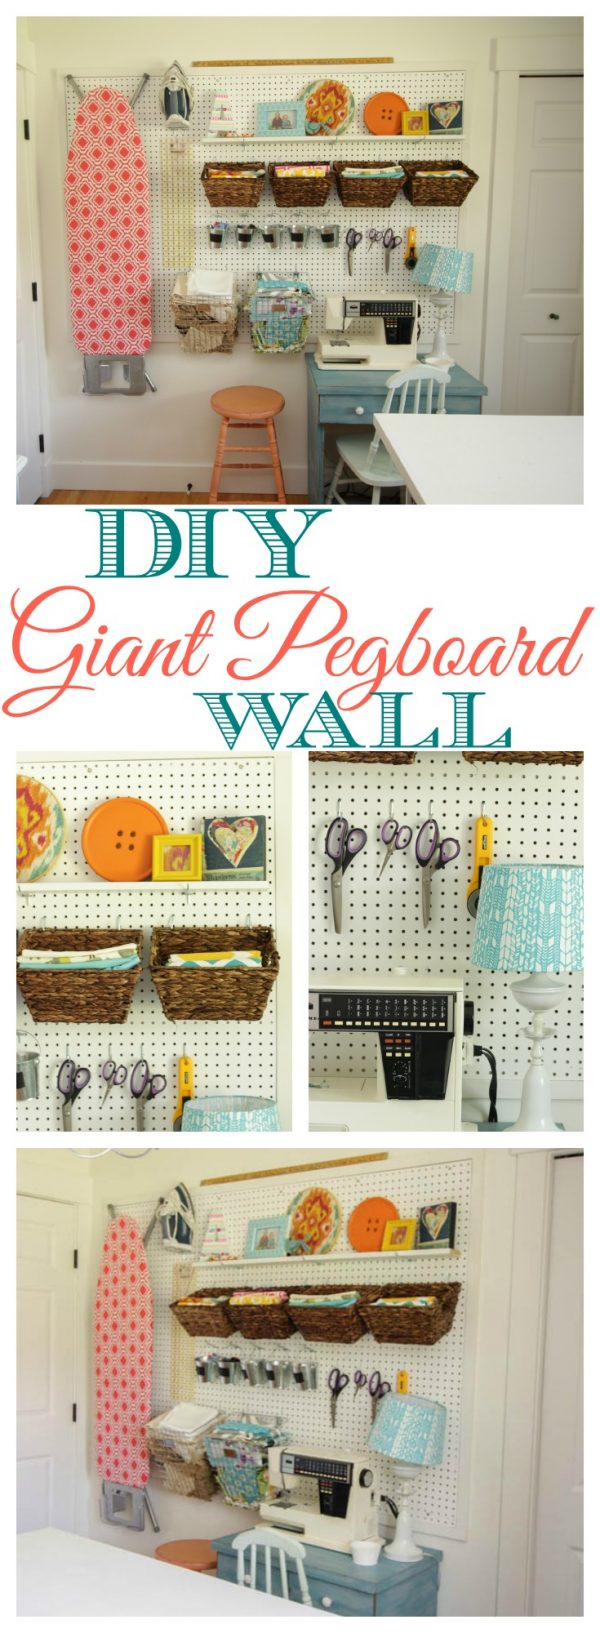 Creative How To Install A Diy Giant Pegboard Wall Craft Room Medium